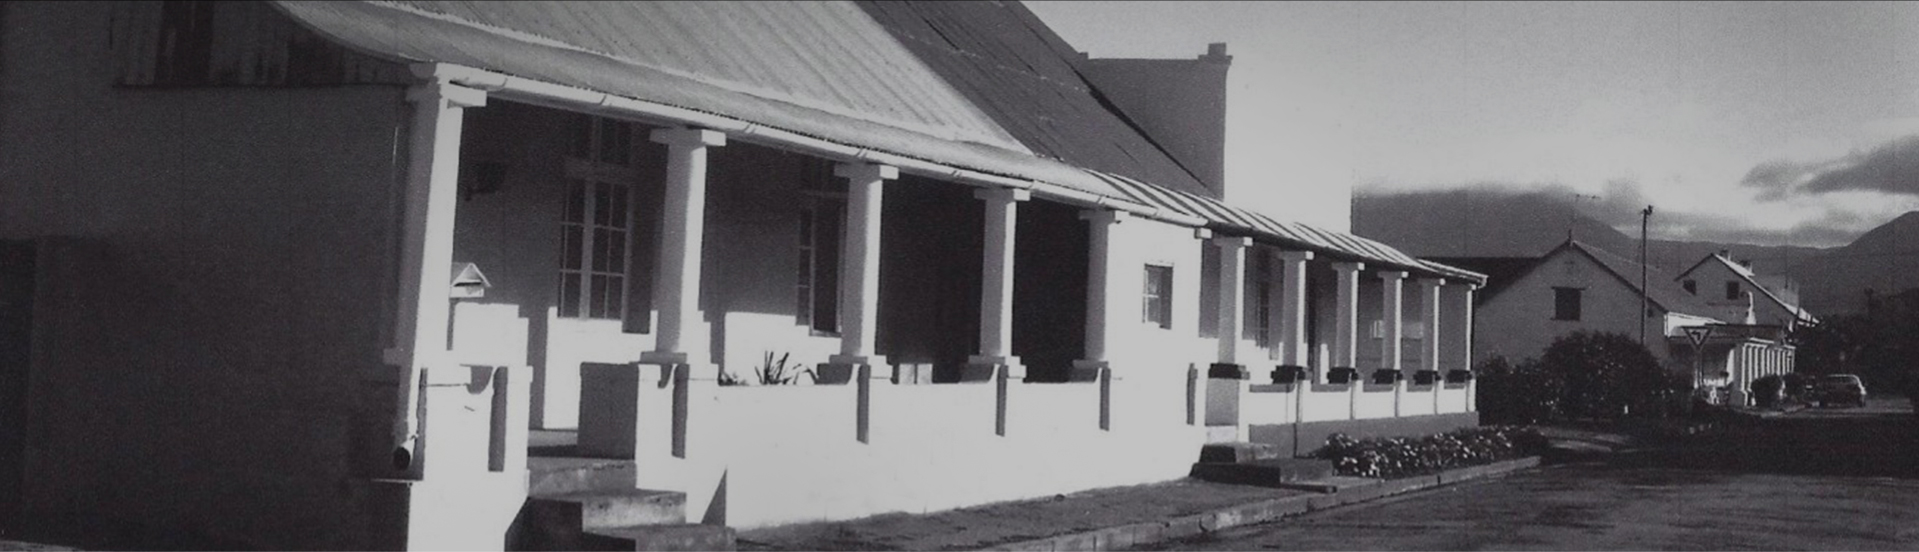 Dedoornkraal Riversdale Accommodation